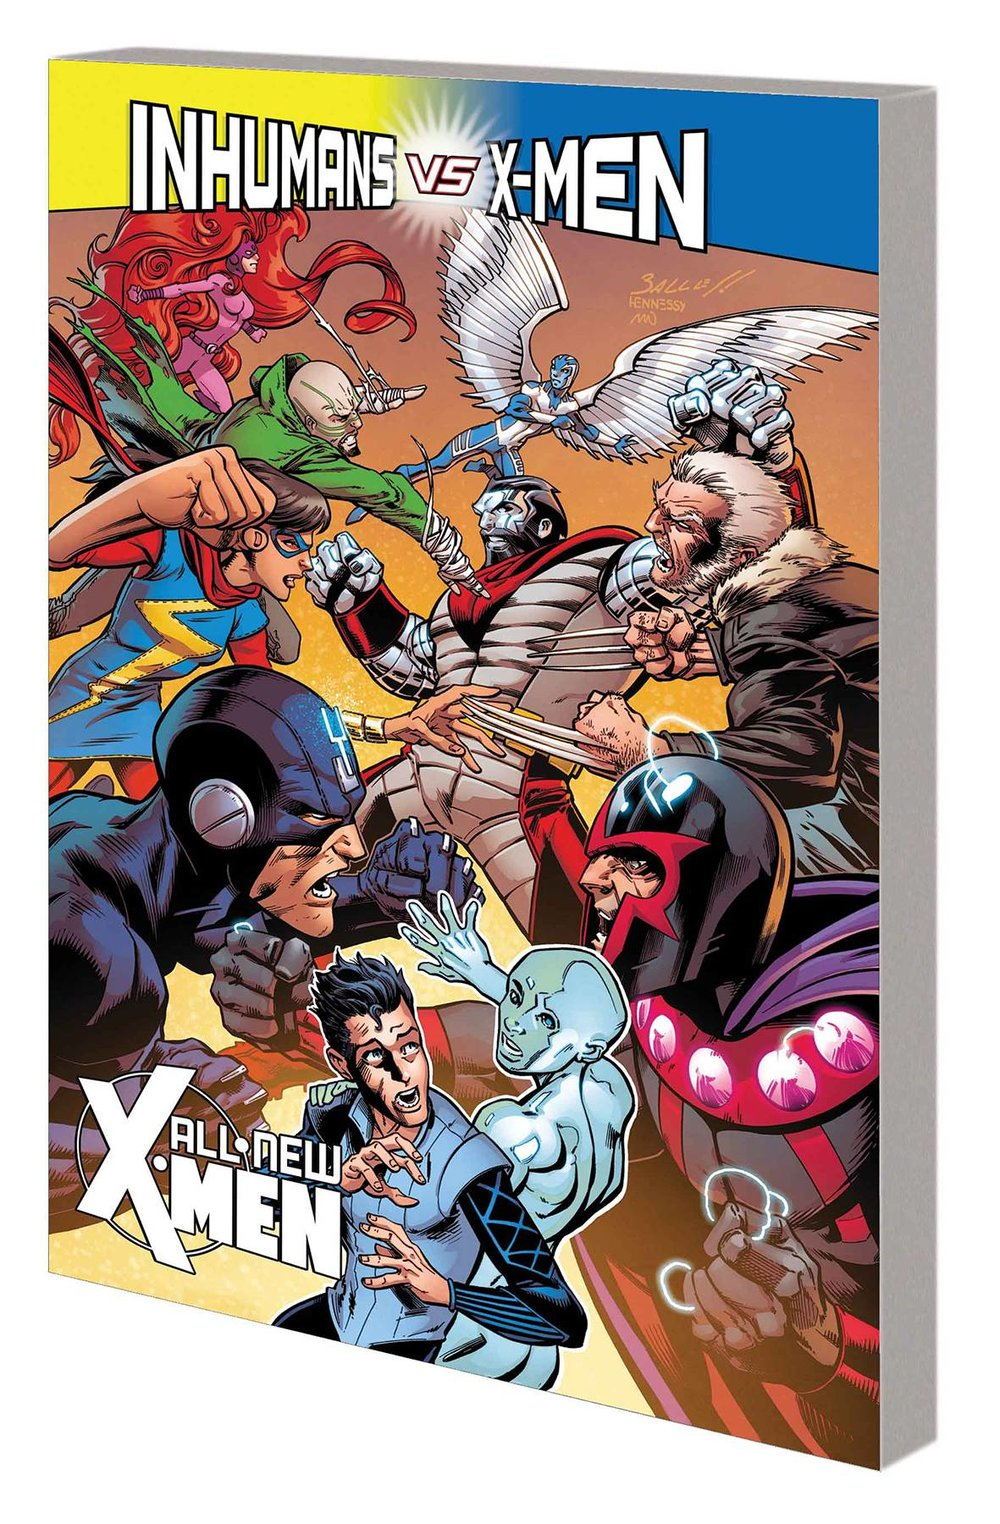 ALL NEW X-MEN INEVITABLE TP 4 IVX.jpg